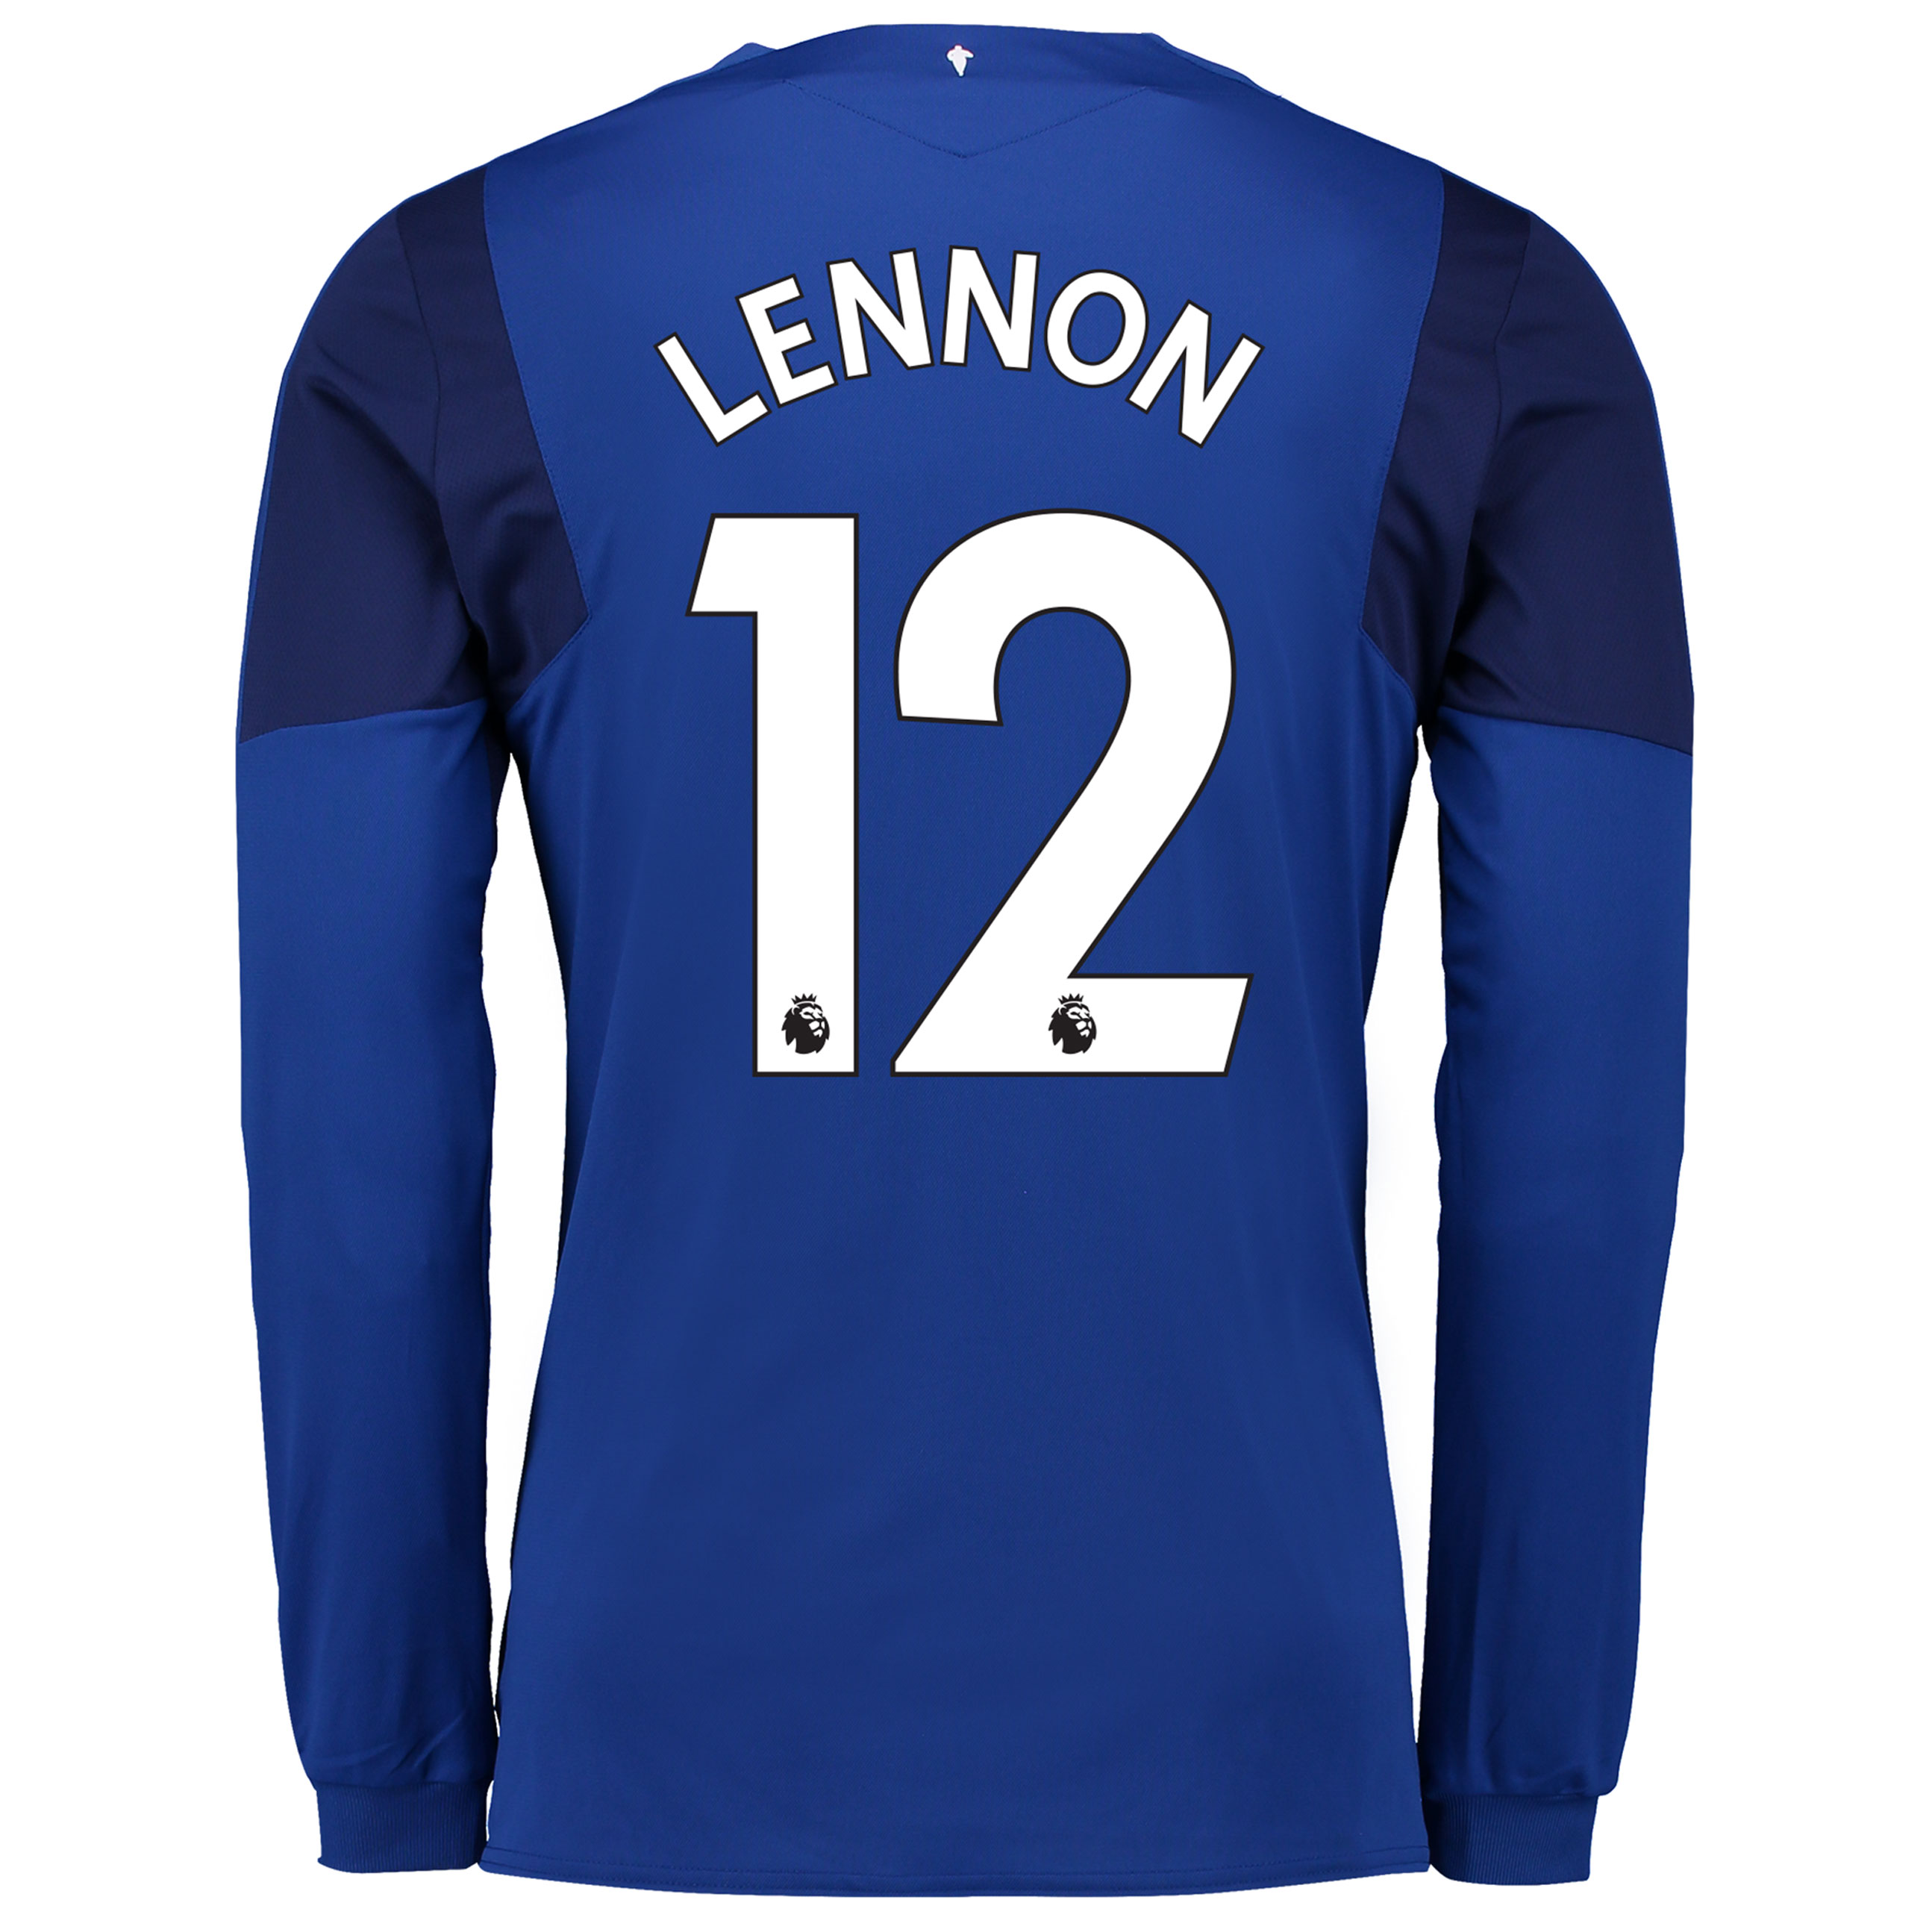 Everton Home Shirt 2017/18 - Long Sleeved with Lennon 12 printing